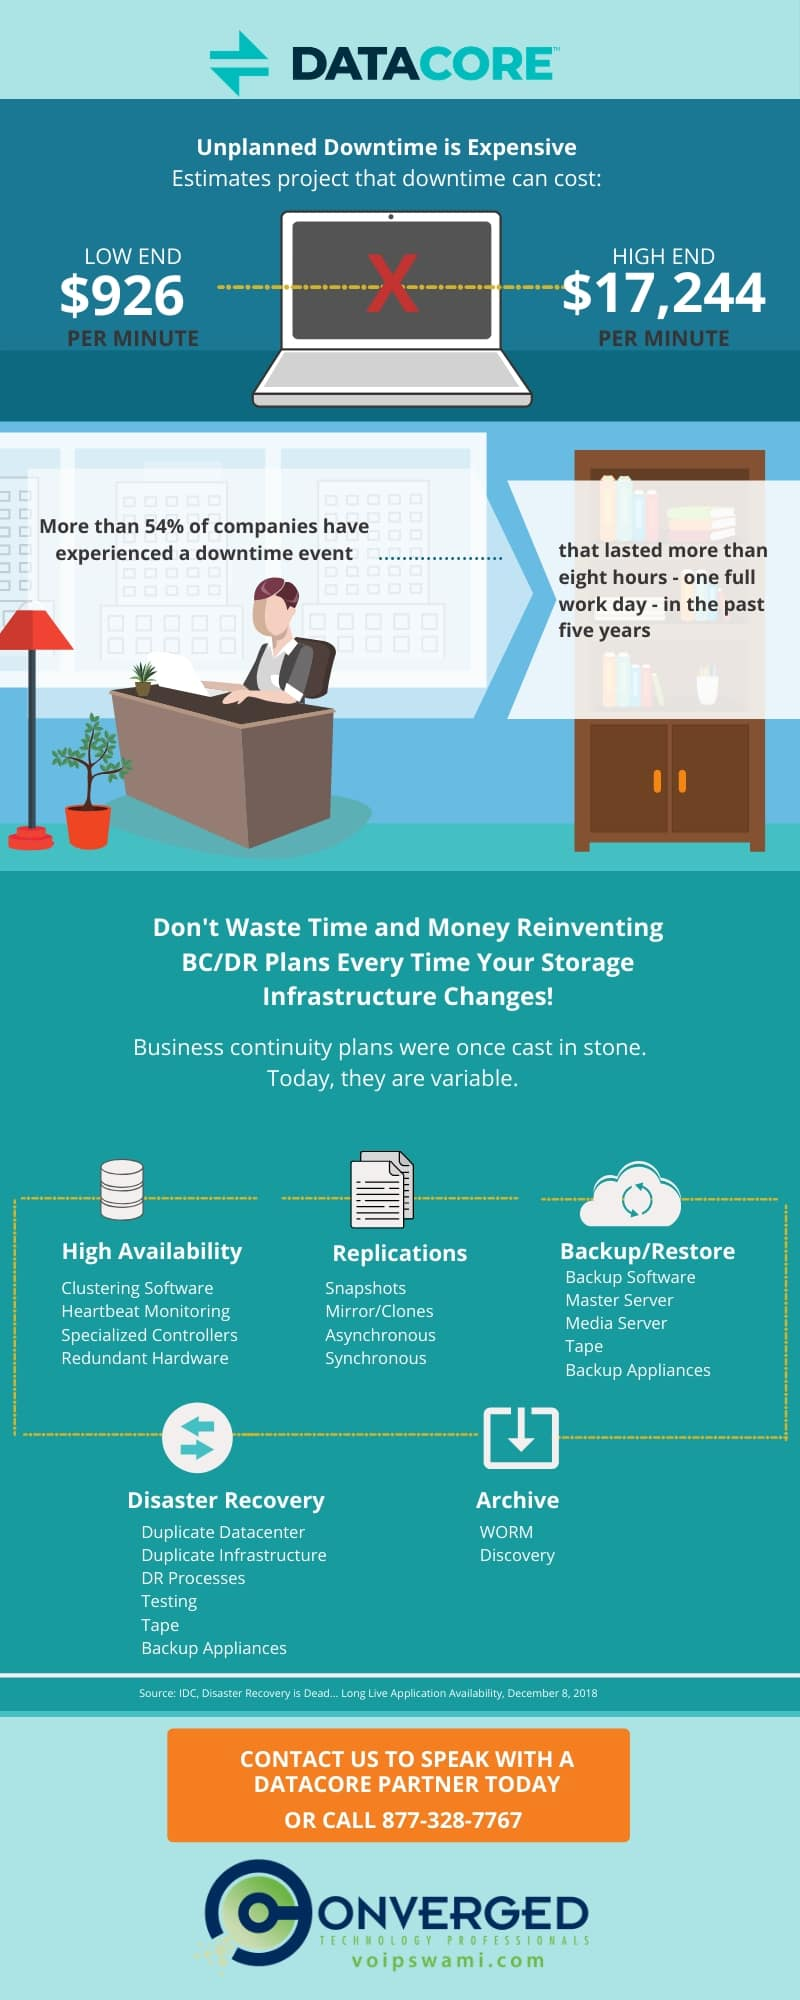 Unplanned Downtime is Expensive datacore Infographic